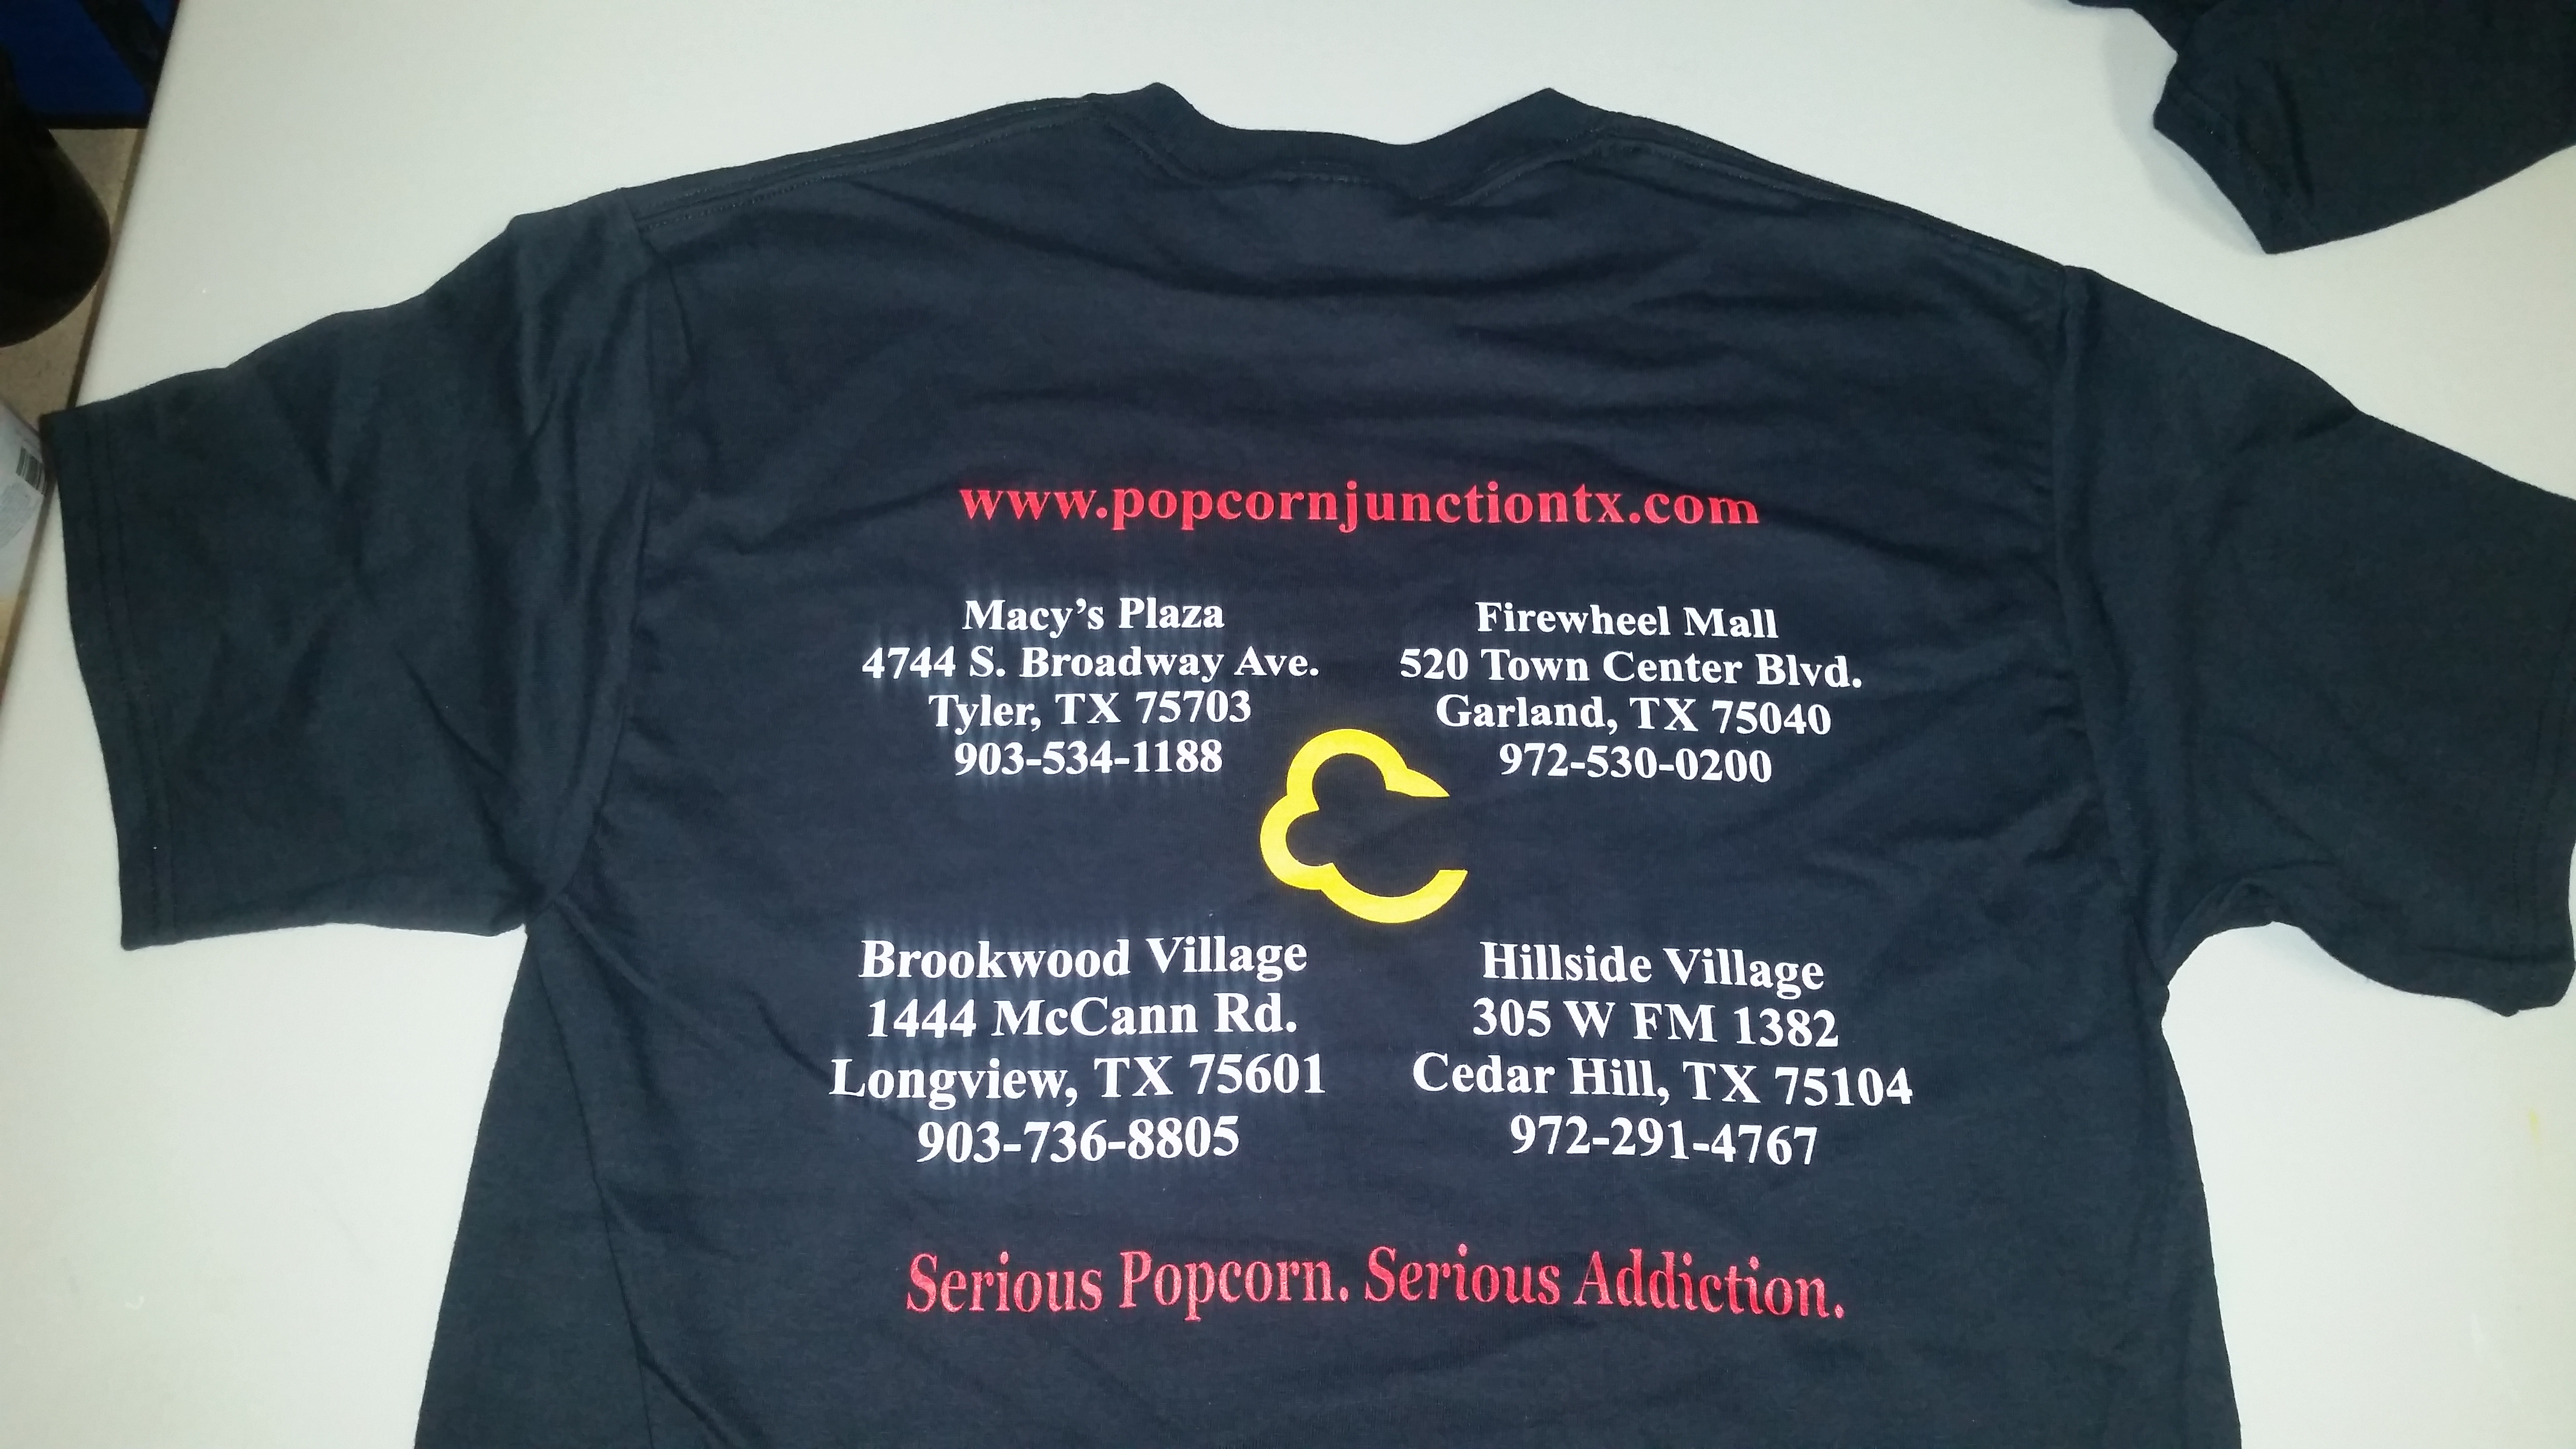 Popcorn Junction Shirts